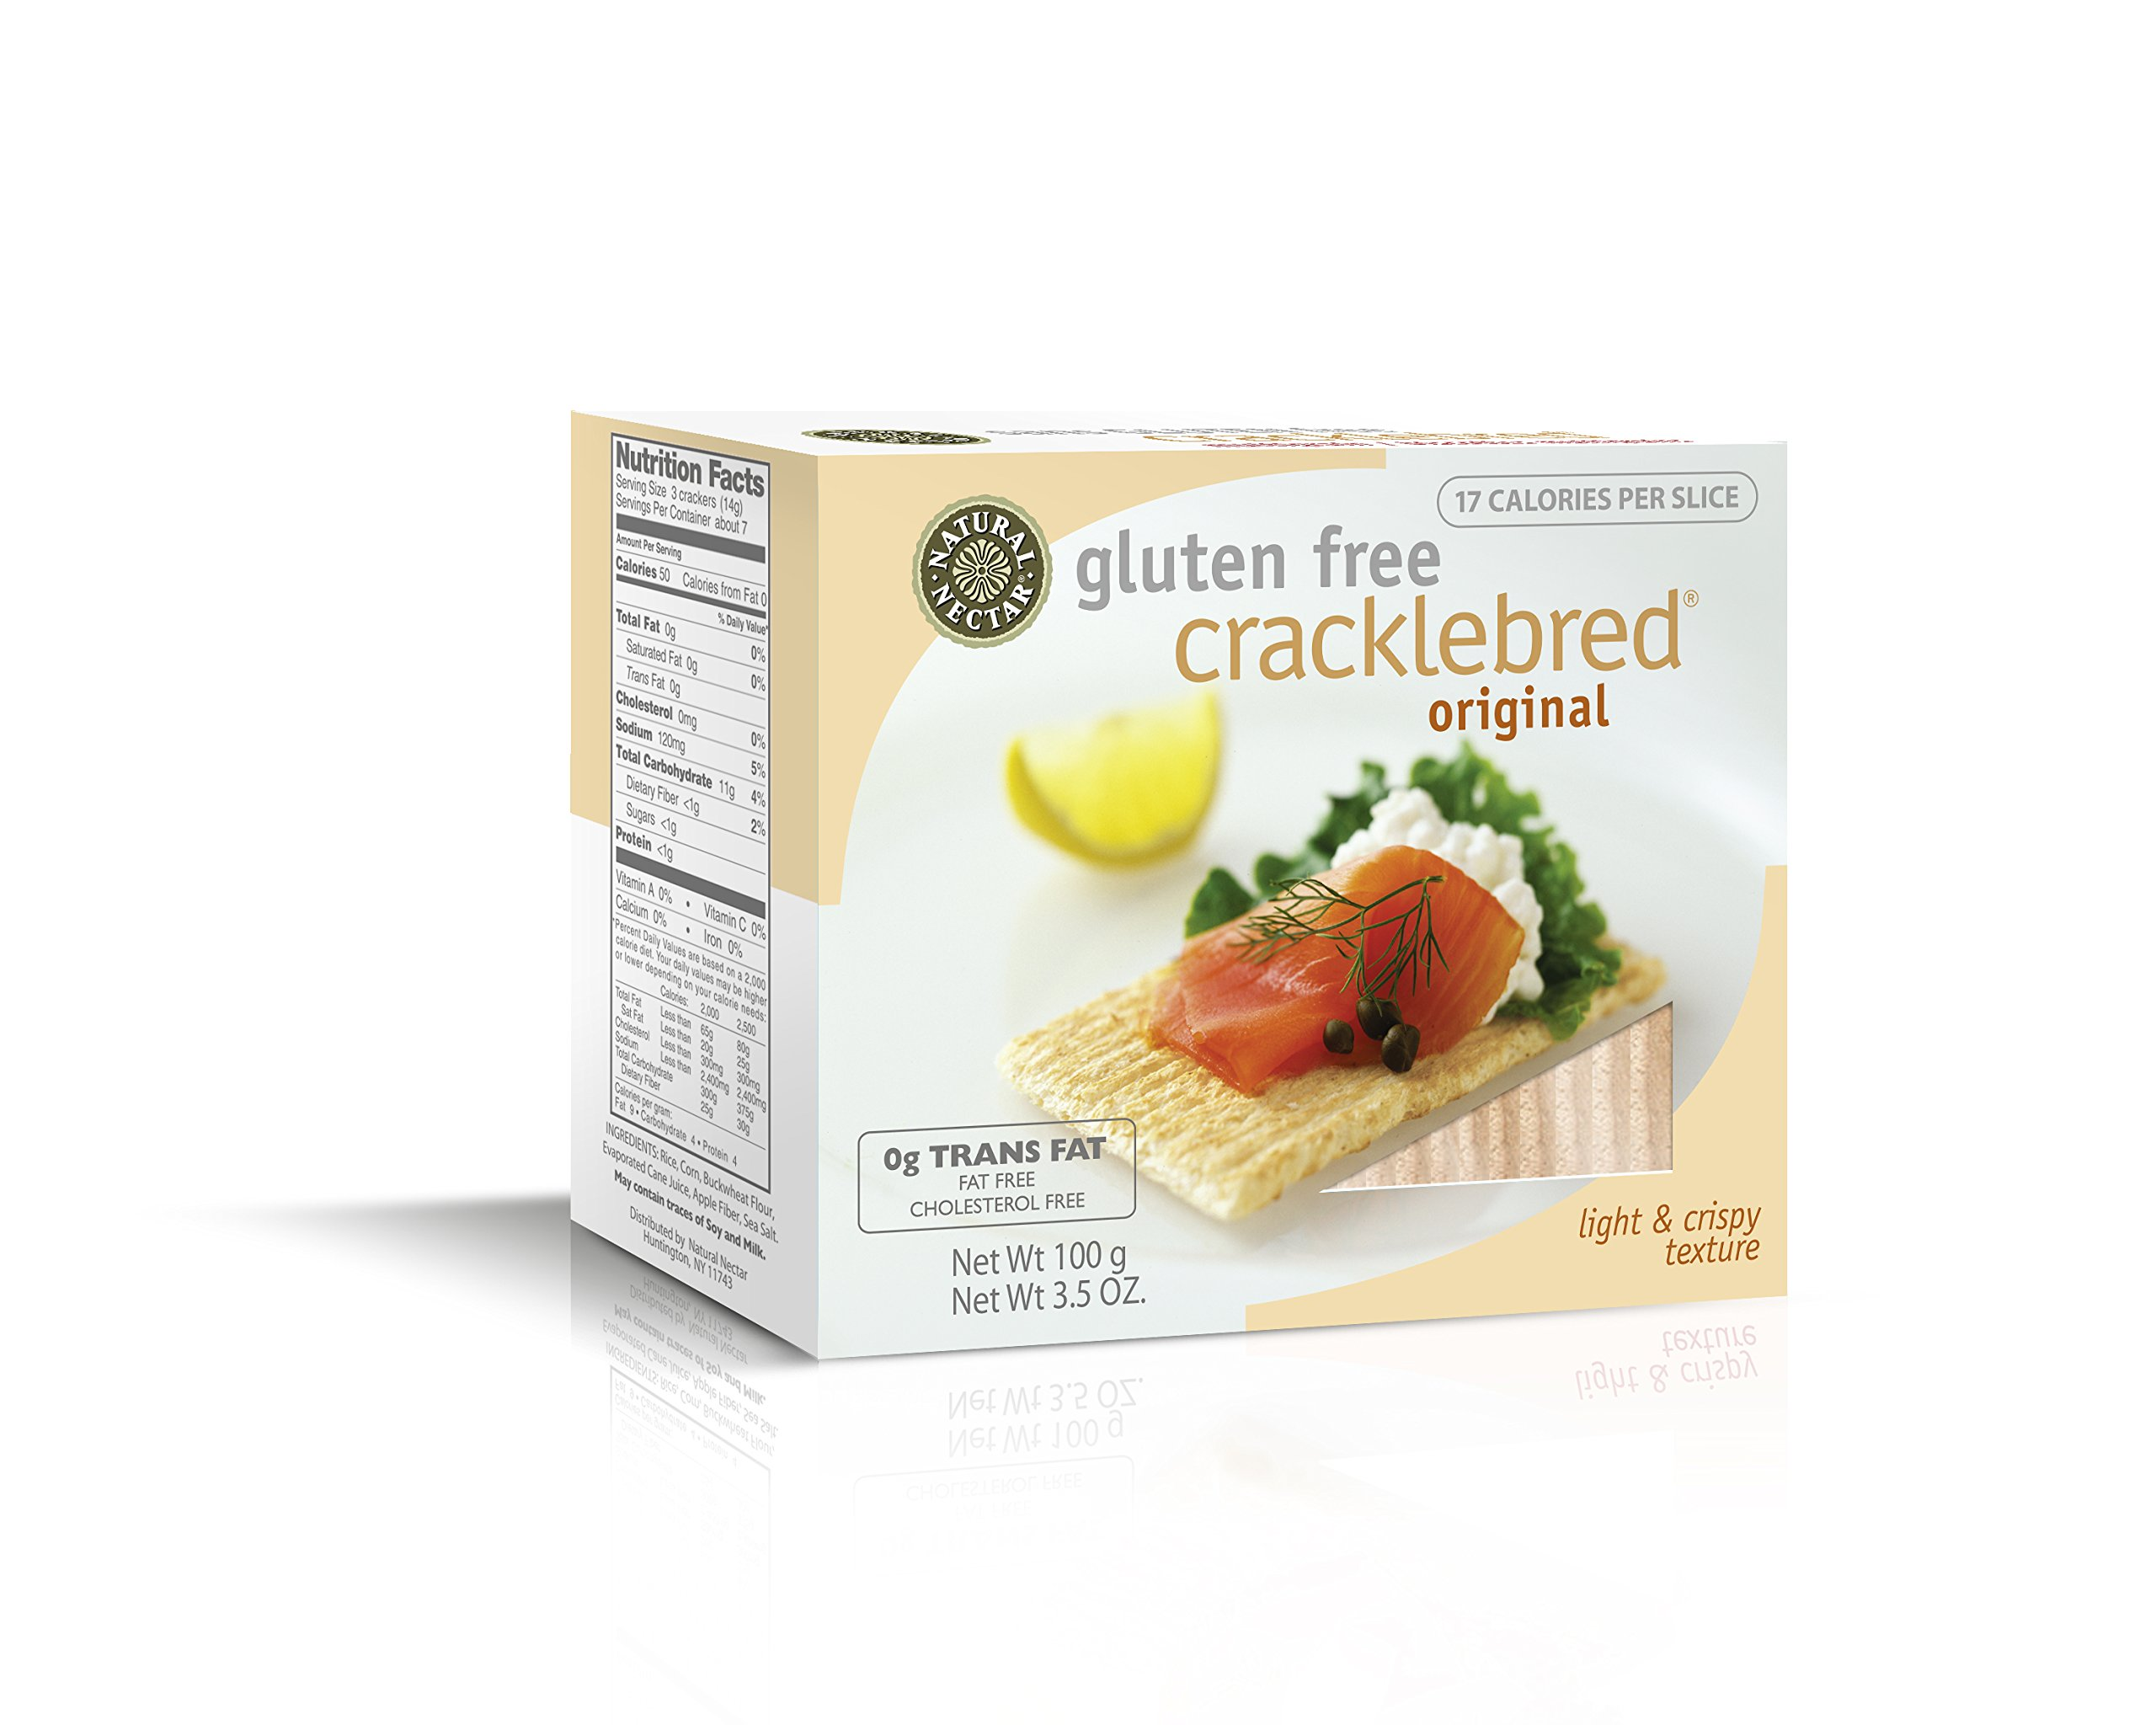 Natural Nectar Gluten Free Cracklebred, Original, 3.5-Ounce Boxes (Pack of 12) by Natural Nectar